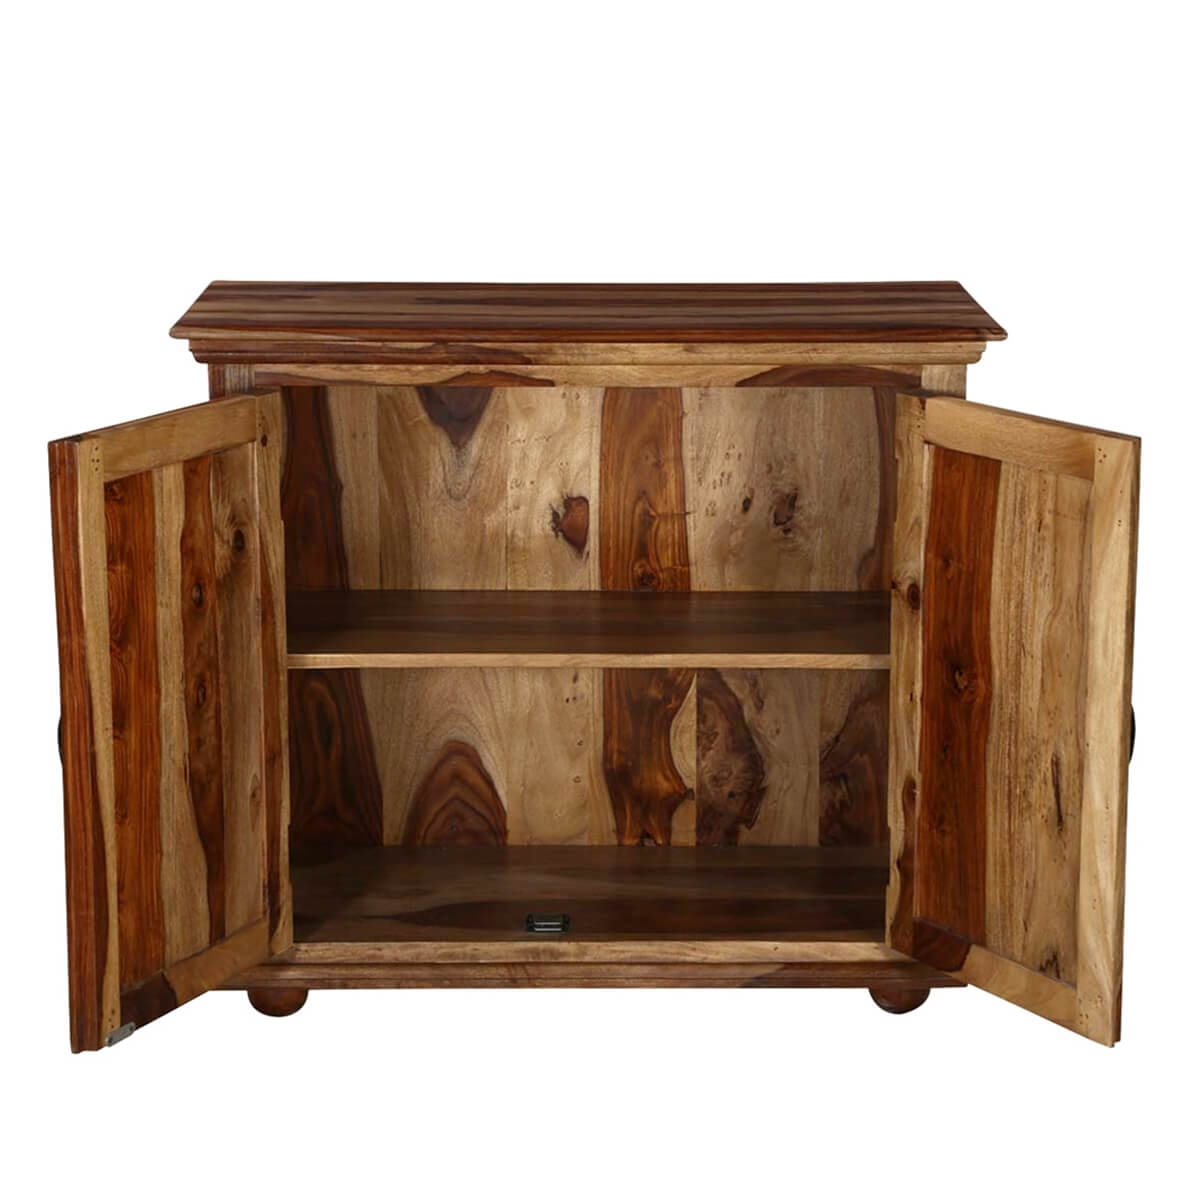 Dallas ranch rustic solid rosewood freestanding buffet cabinet for Rosewood ranch cost